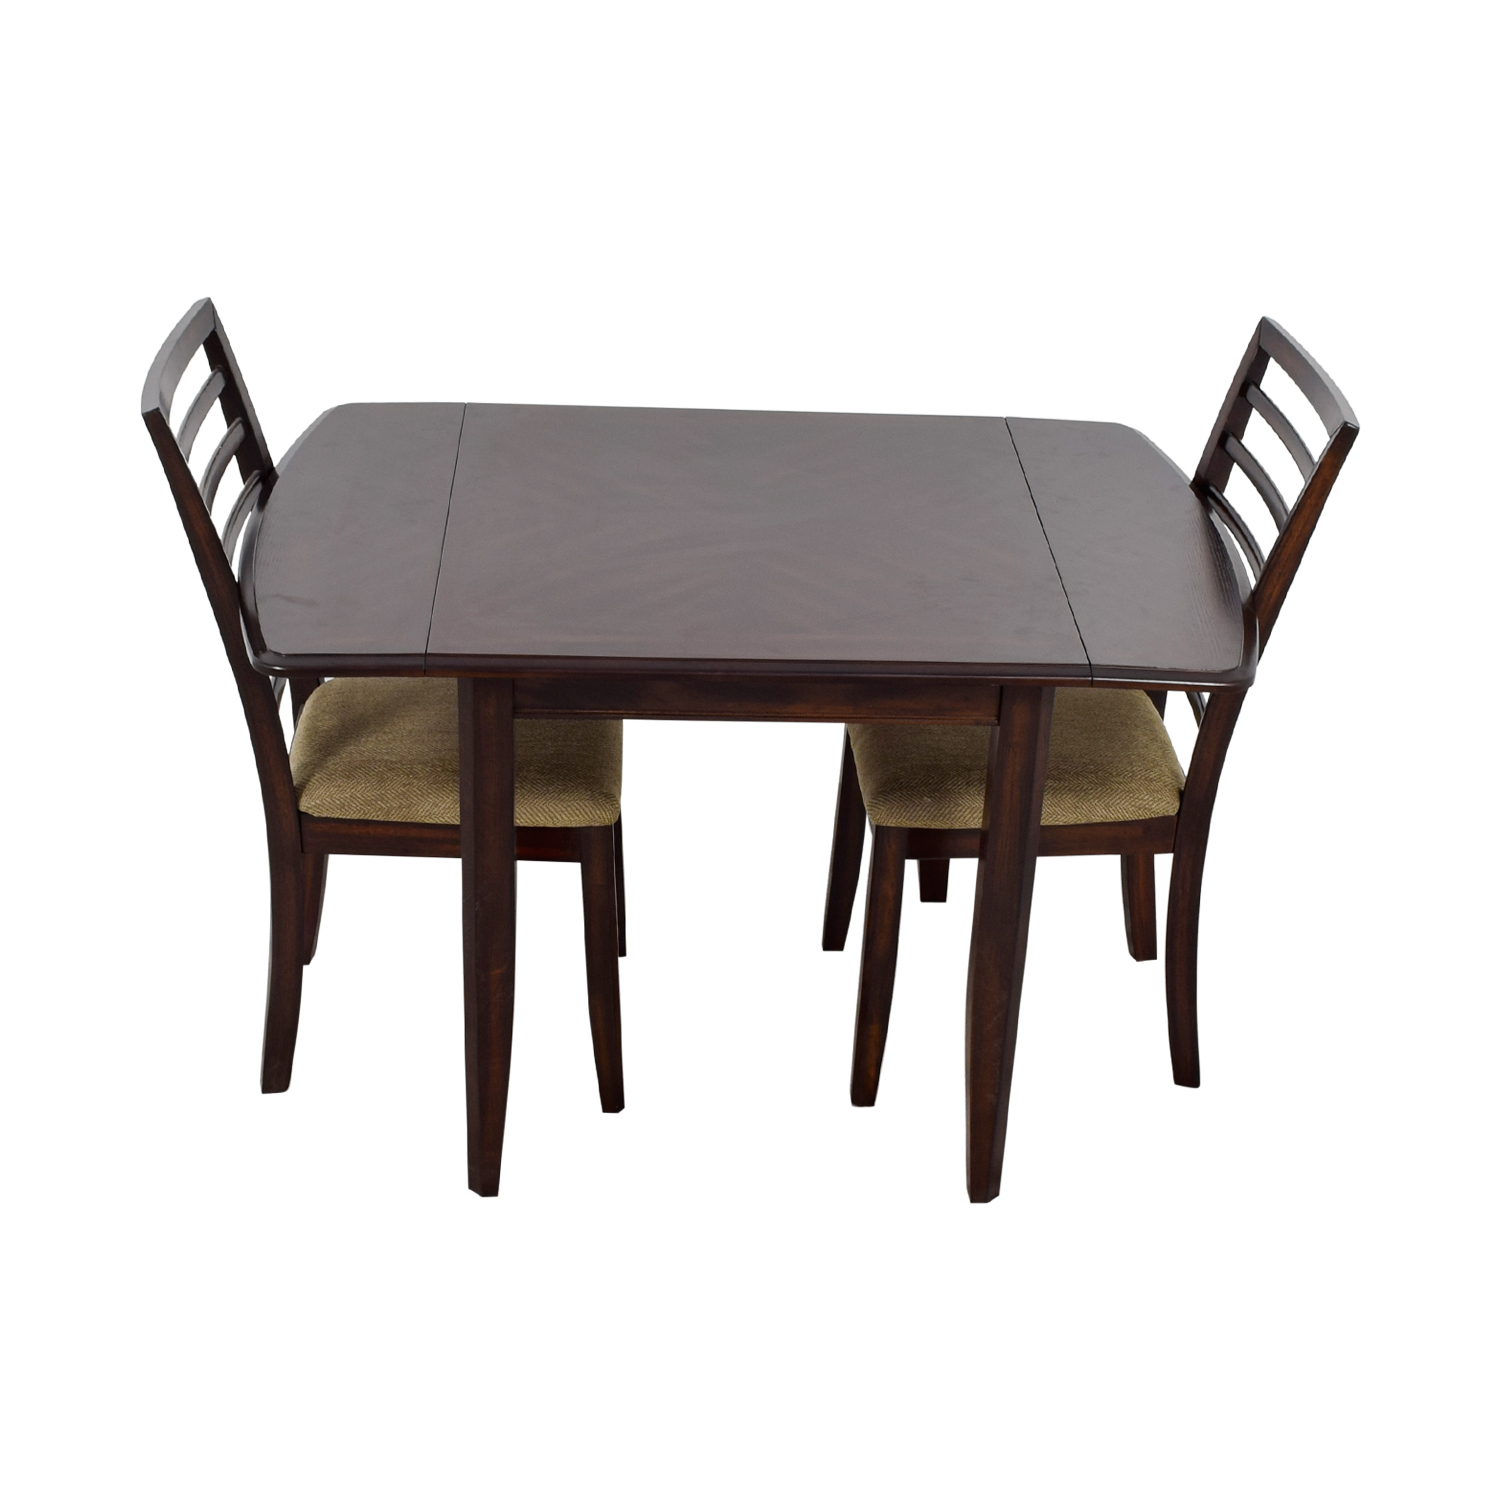 buy Raymour & Flanigan Raymour & Flanigan Dining Table with Chairs online